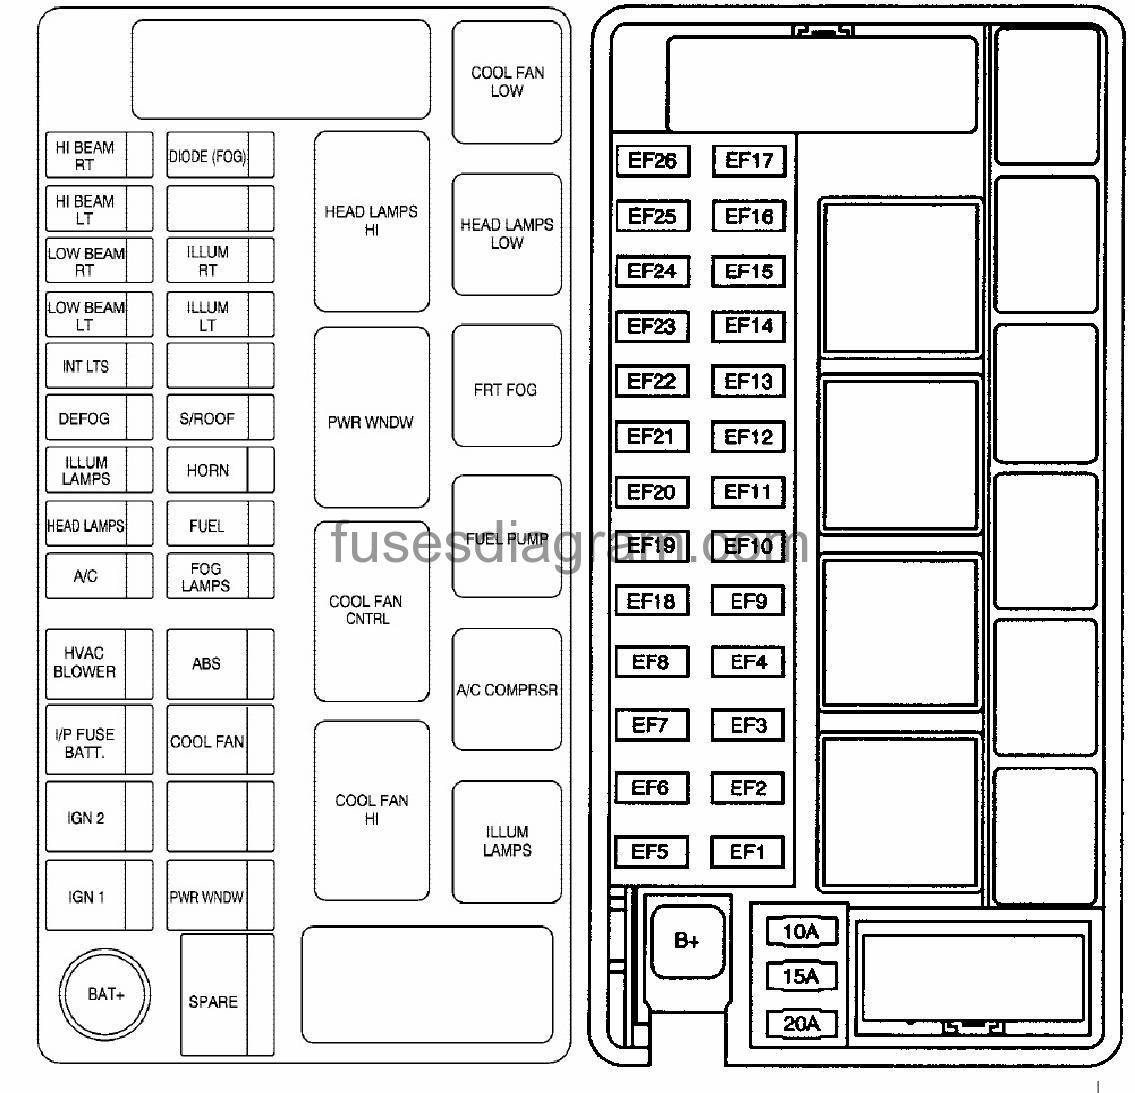 hight resolution of pin box diagram 2005 aveo fuse splicer wiring diagram detailed2006 chevy aveo ls fuse box wiring